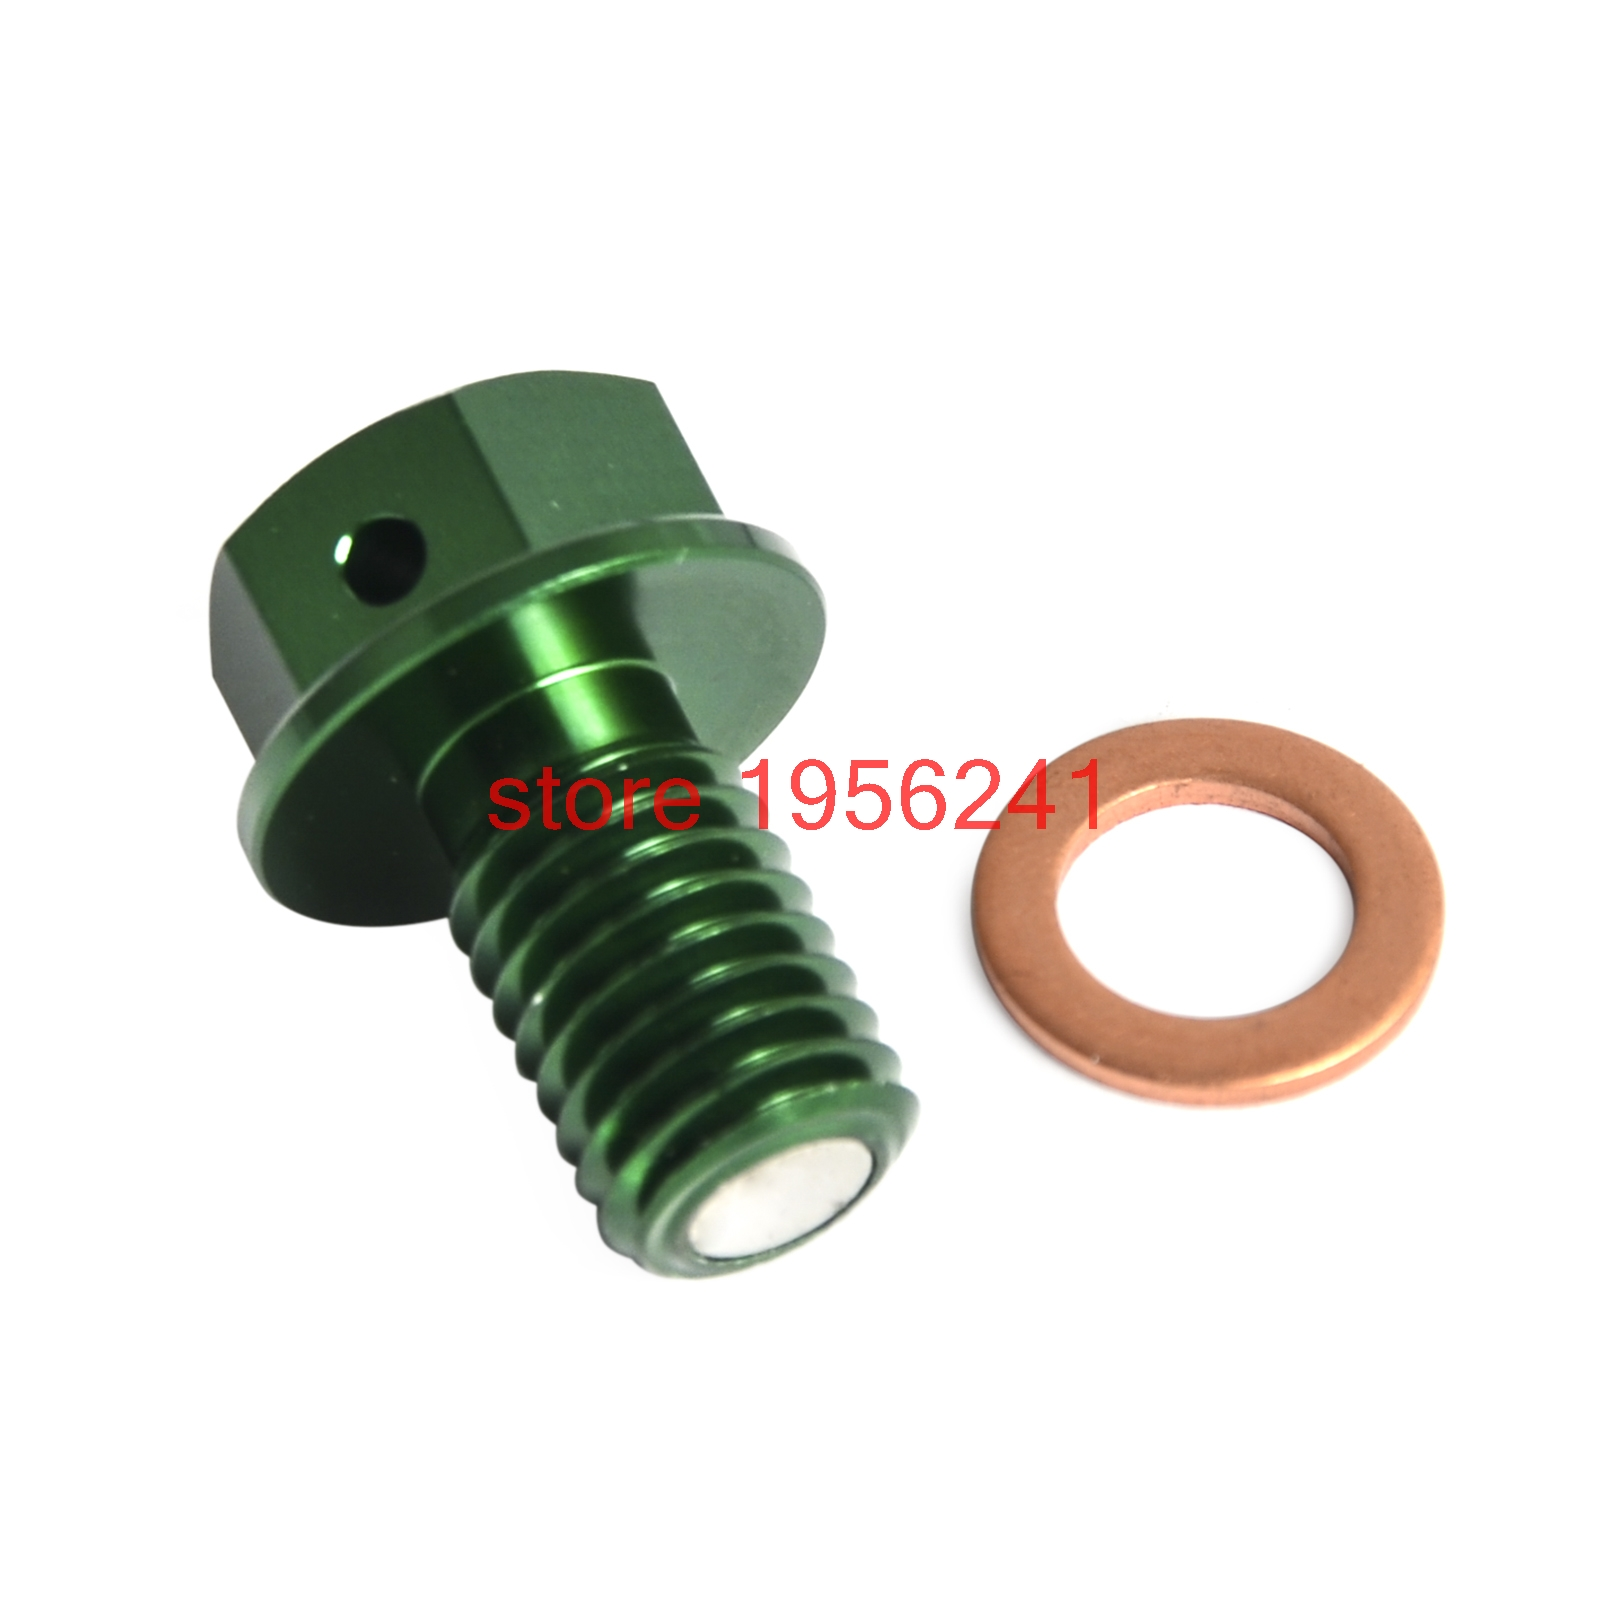 Motorcycle Magnetic Oil Drain Bolt Plugs for Kawasaki KX60 KX65 KX80 KX85 KX100 KX125 KX250 KX250F KX450F KX500